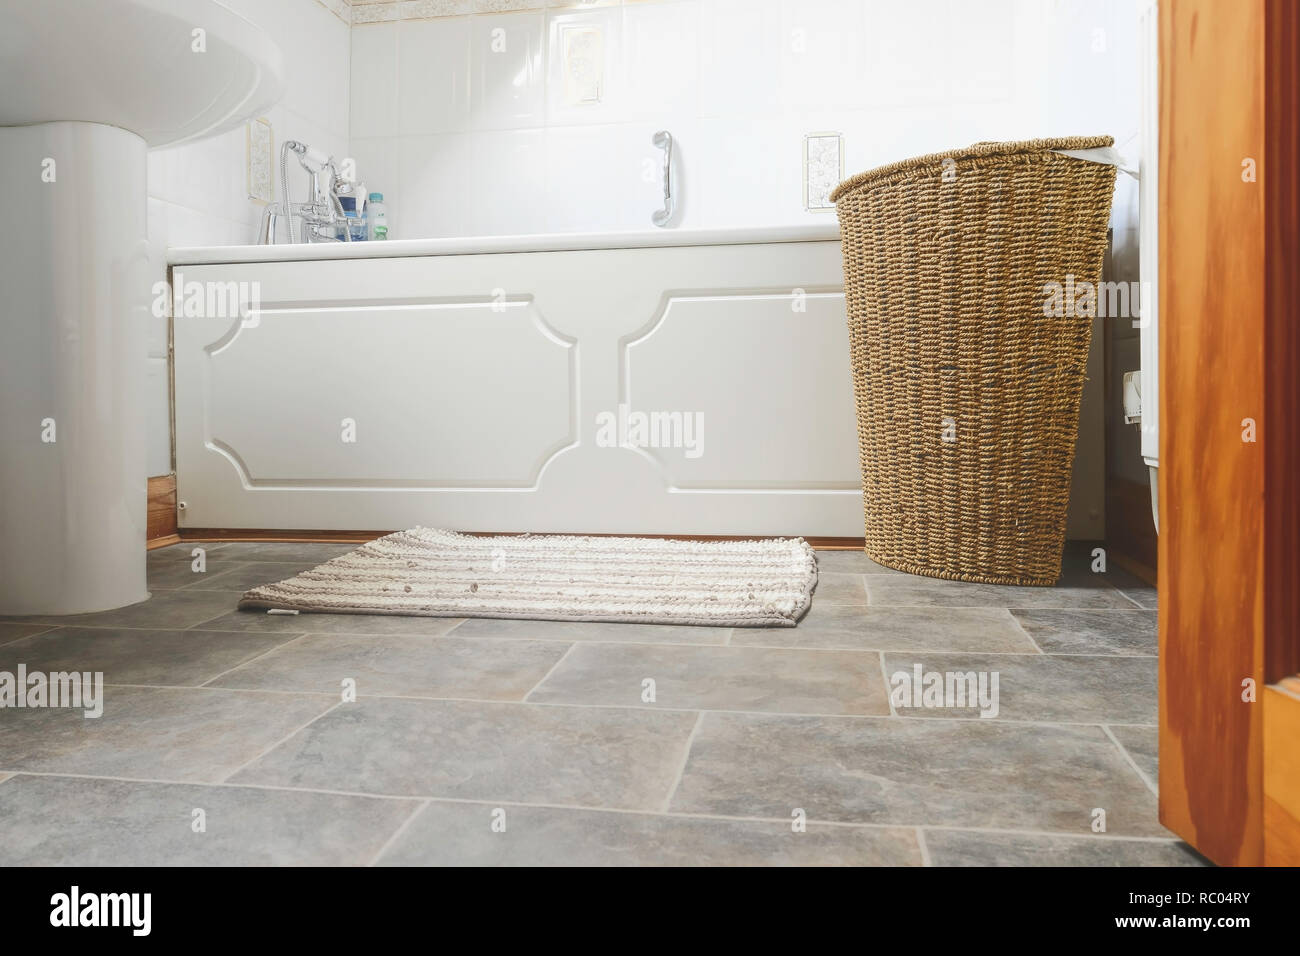 Swing Badezimmer Toilet Magazine Stockfotos Toilet Magazine Bilder Seite 2 Alamy